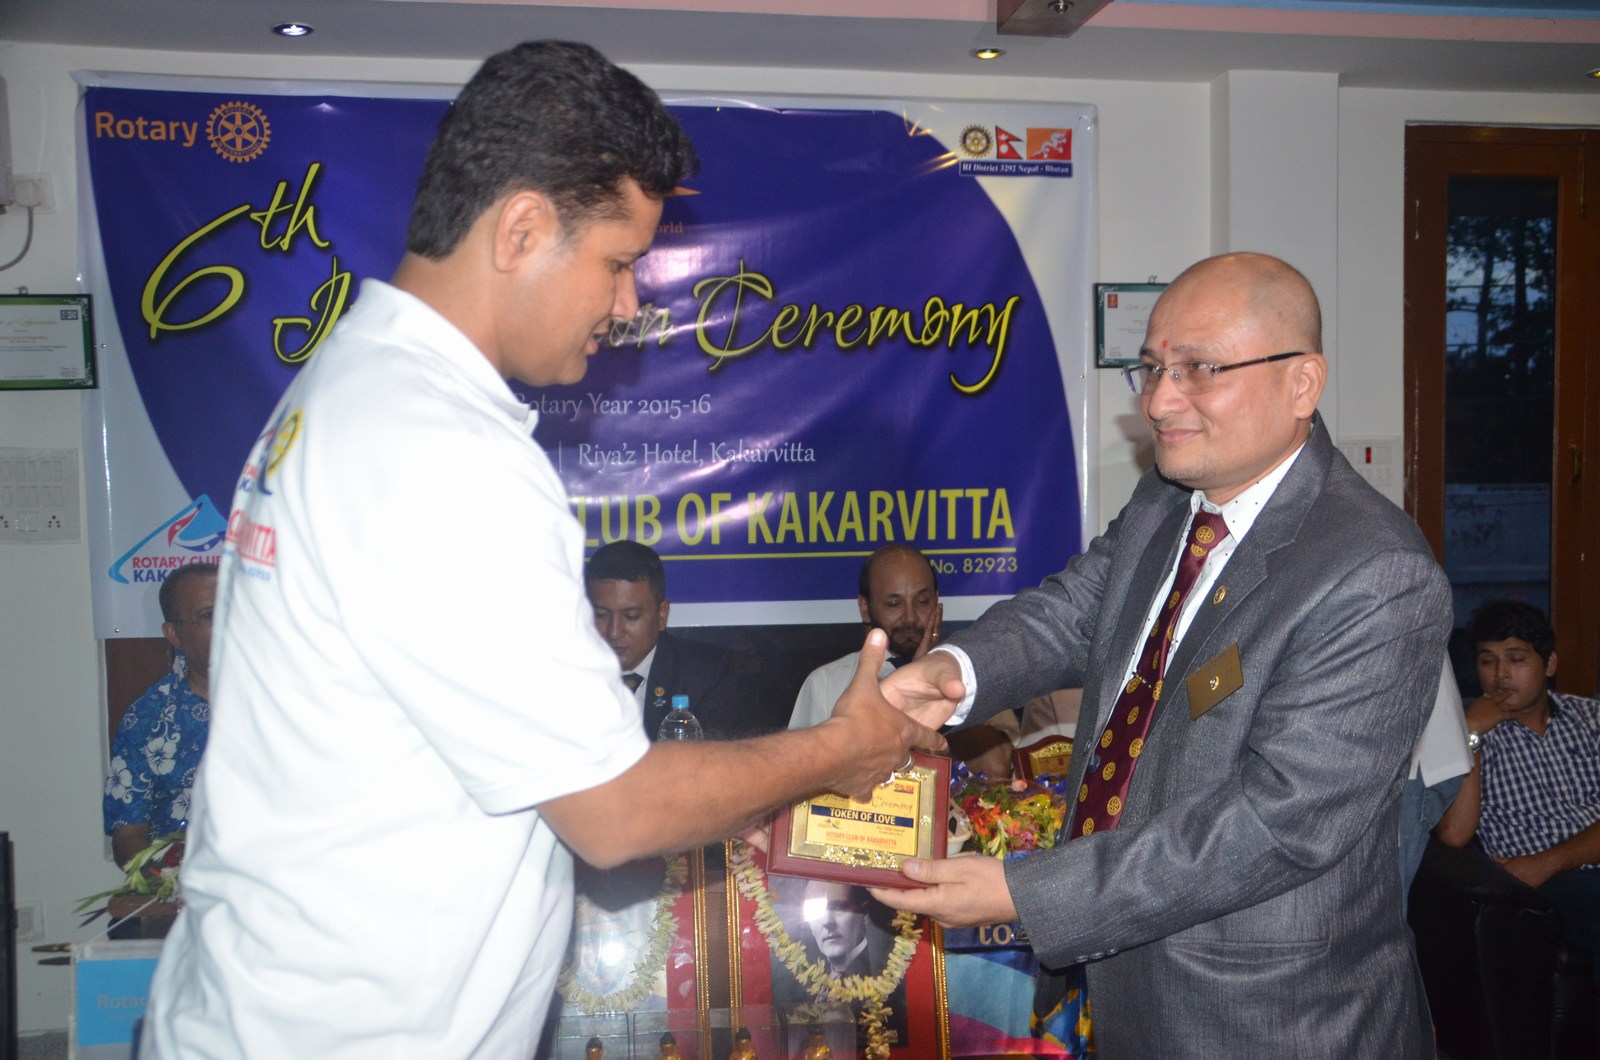 6th Installation Ceremony 2015 16 Rotary Club Of Kakarvitta 24